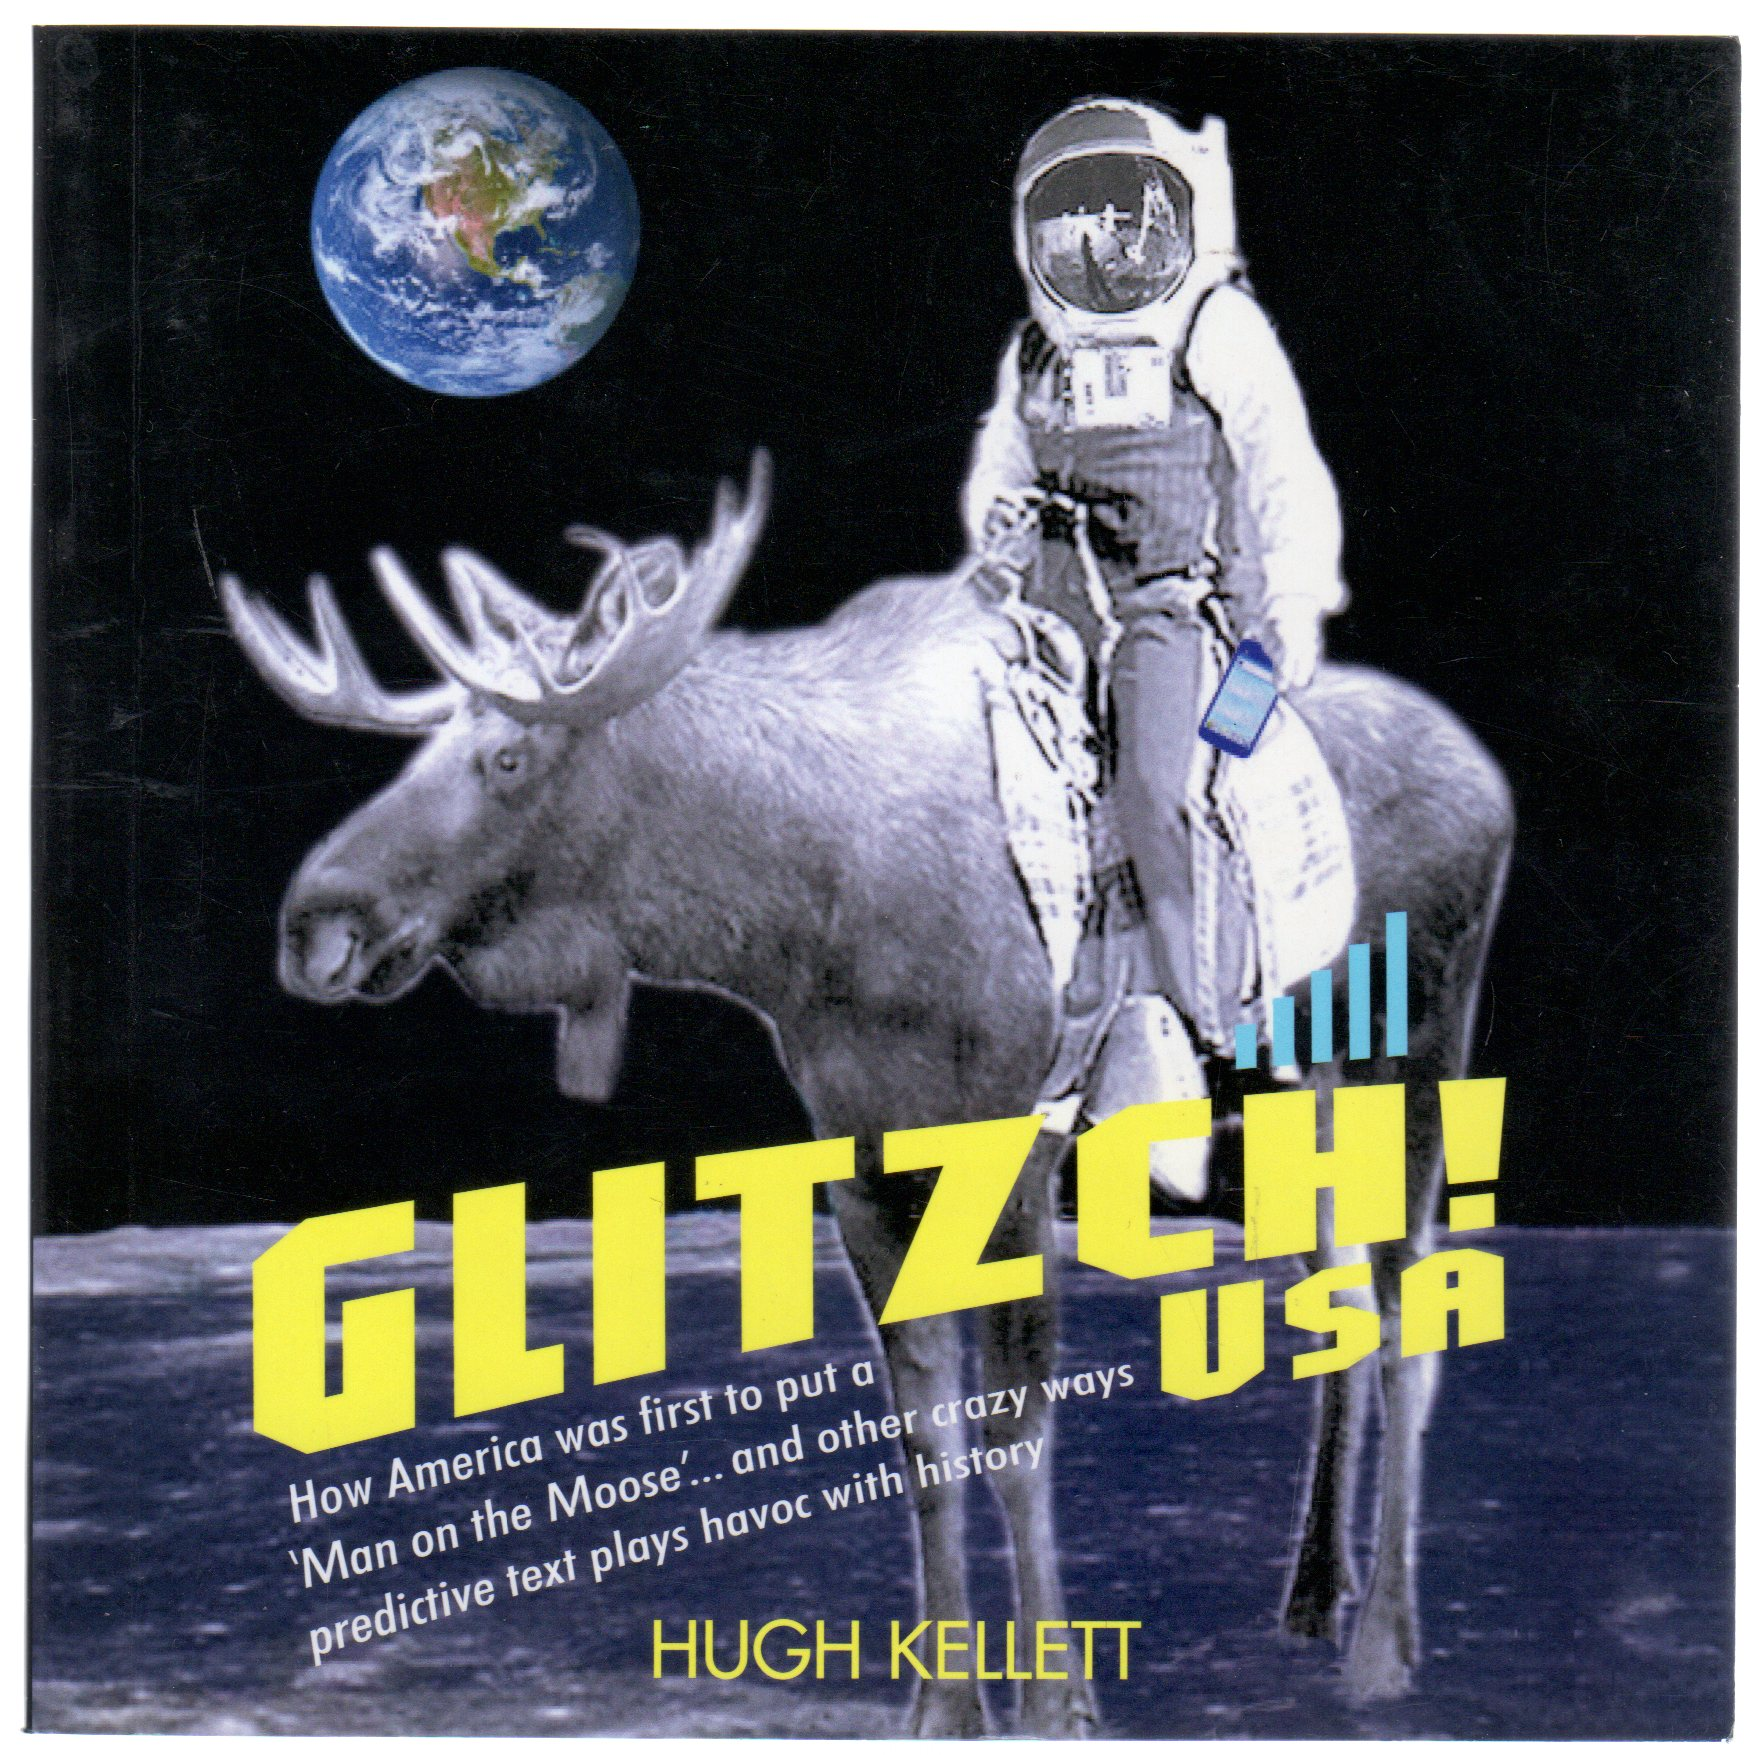 Image for Glitzch! USA : How America Was First to Put a 'Man on the Moose'...and Other Way Predictive Text Plays Havoc with History (SIGNED COPY)